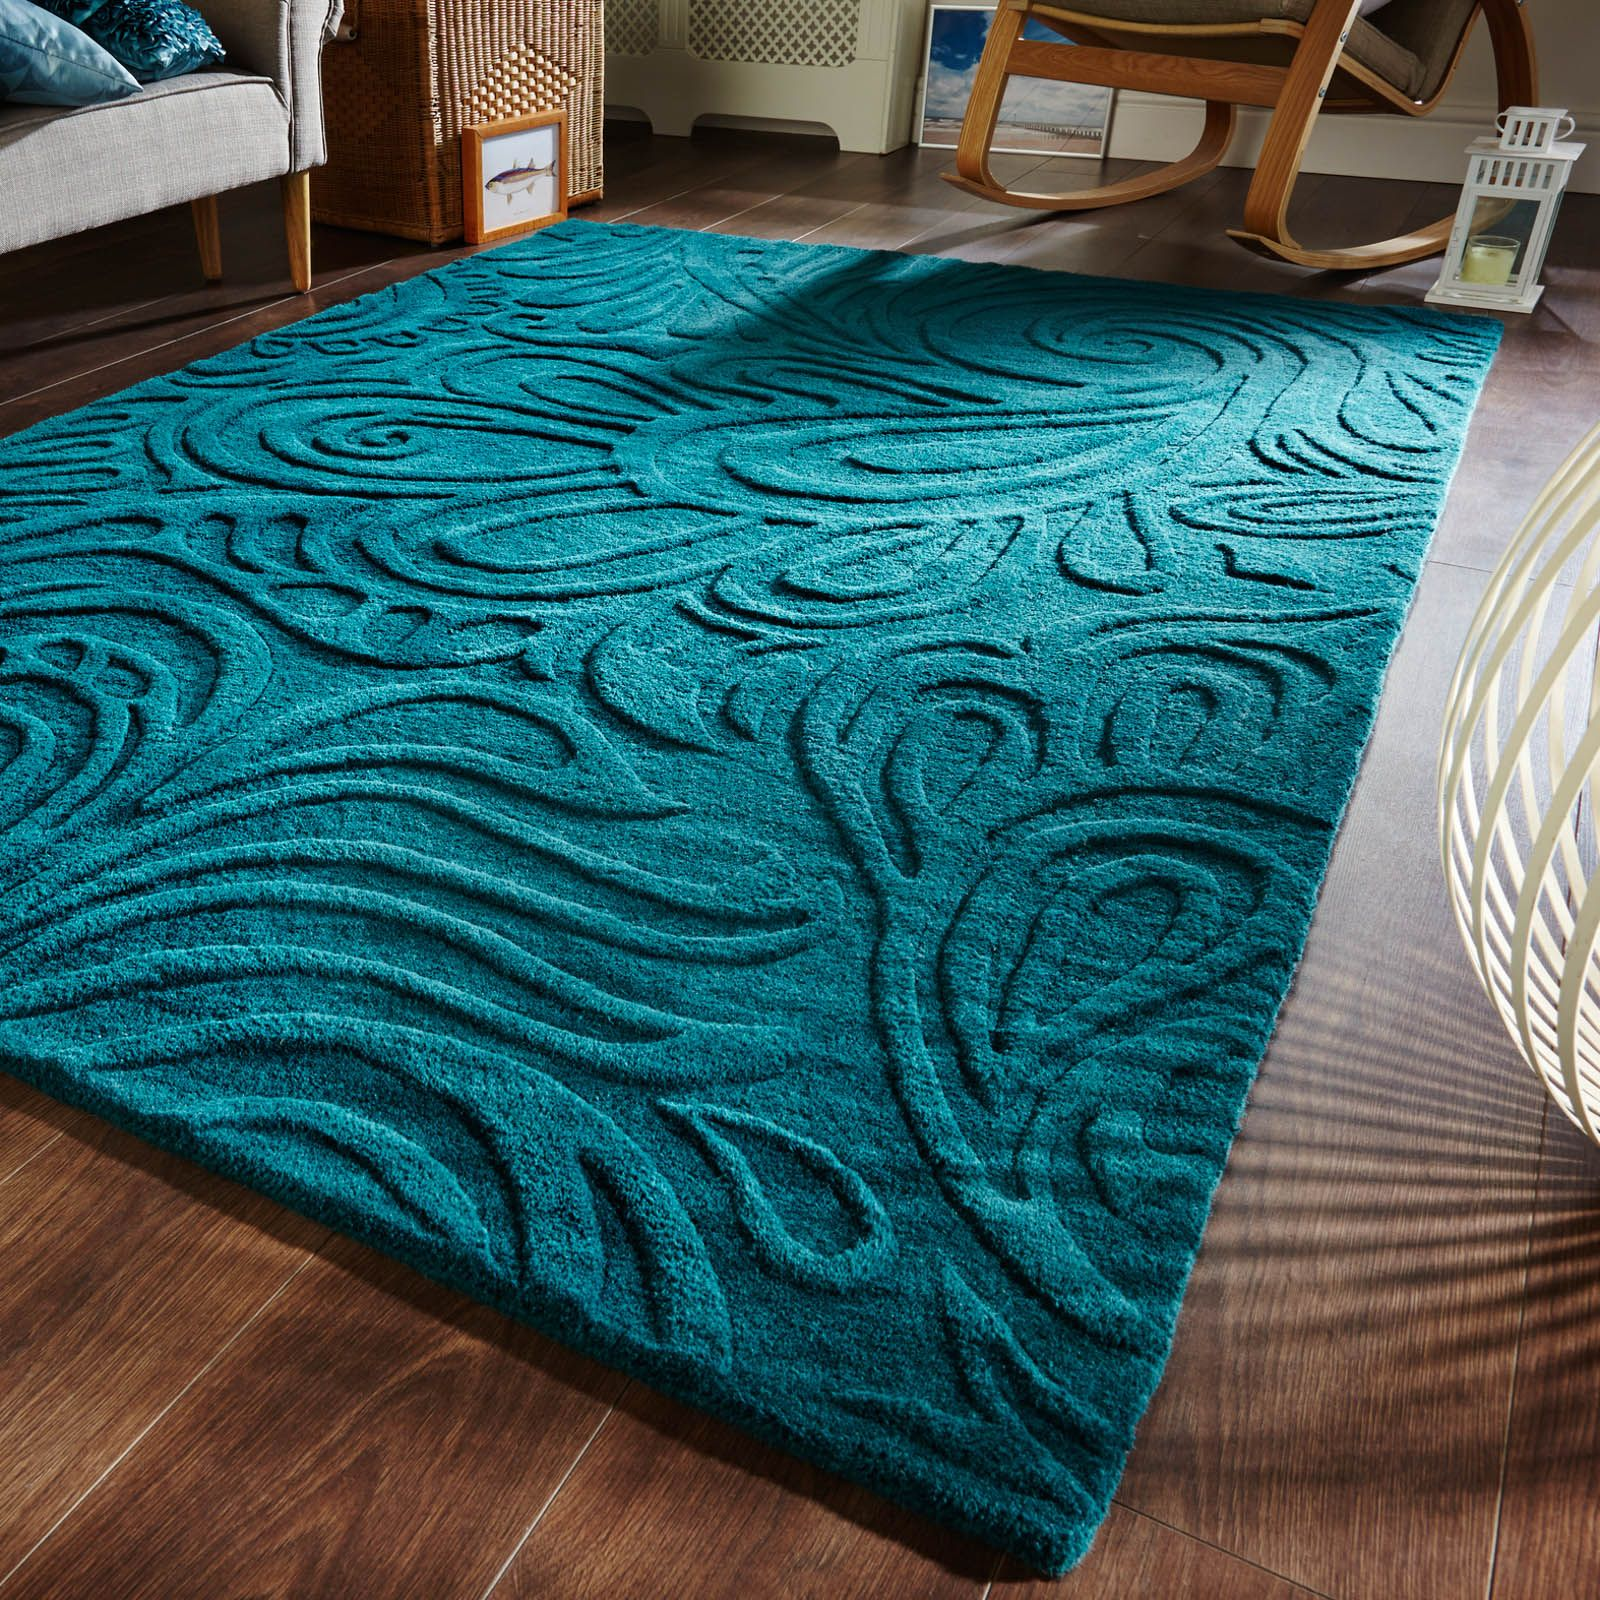 Wonderful Interior The Elegant Teal And White Area Rug: Teal Blue Bedroom Rugs